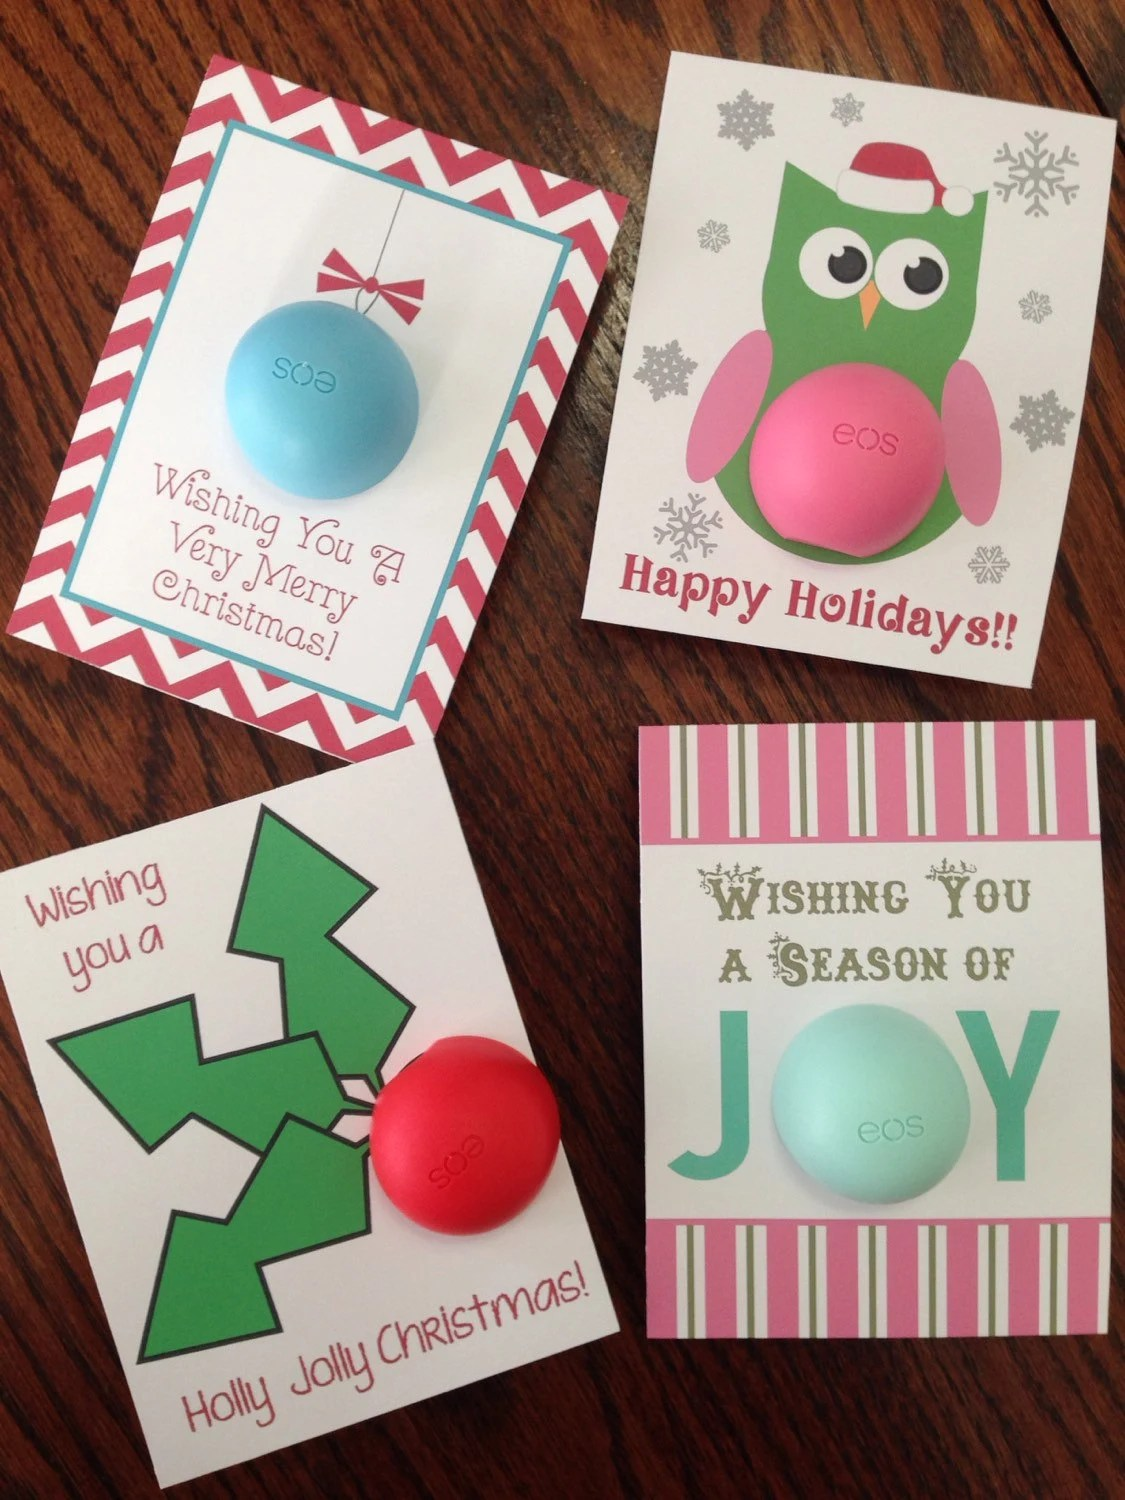 Holiday Christmas Cardsgift Tags For EOS Lip Balm